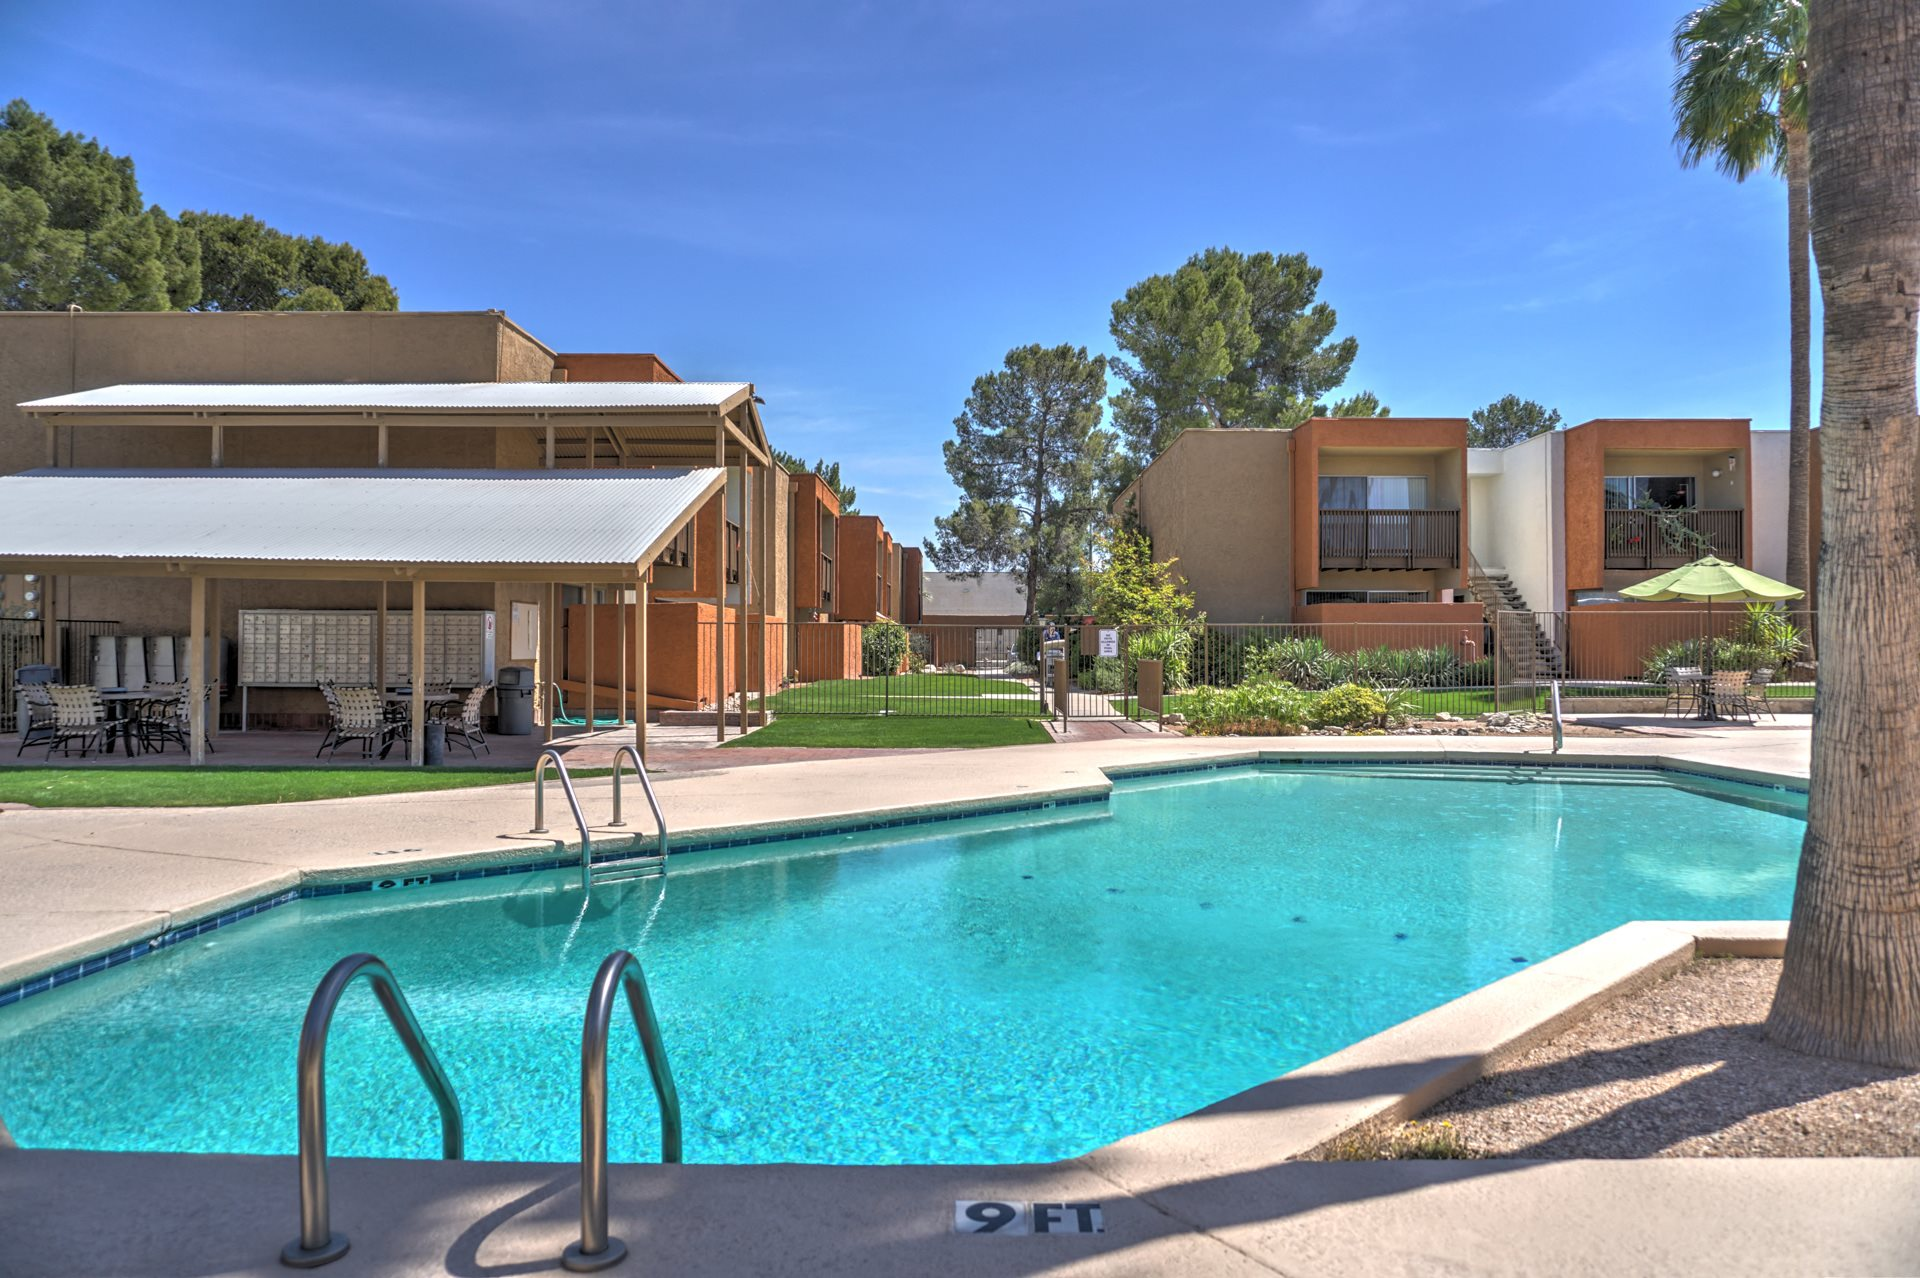 Pool & pool patio at Claremont Villas Apartments in Tucson, AZ